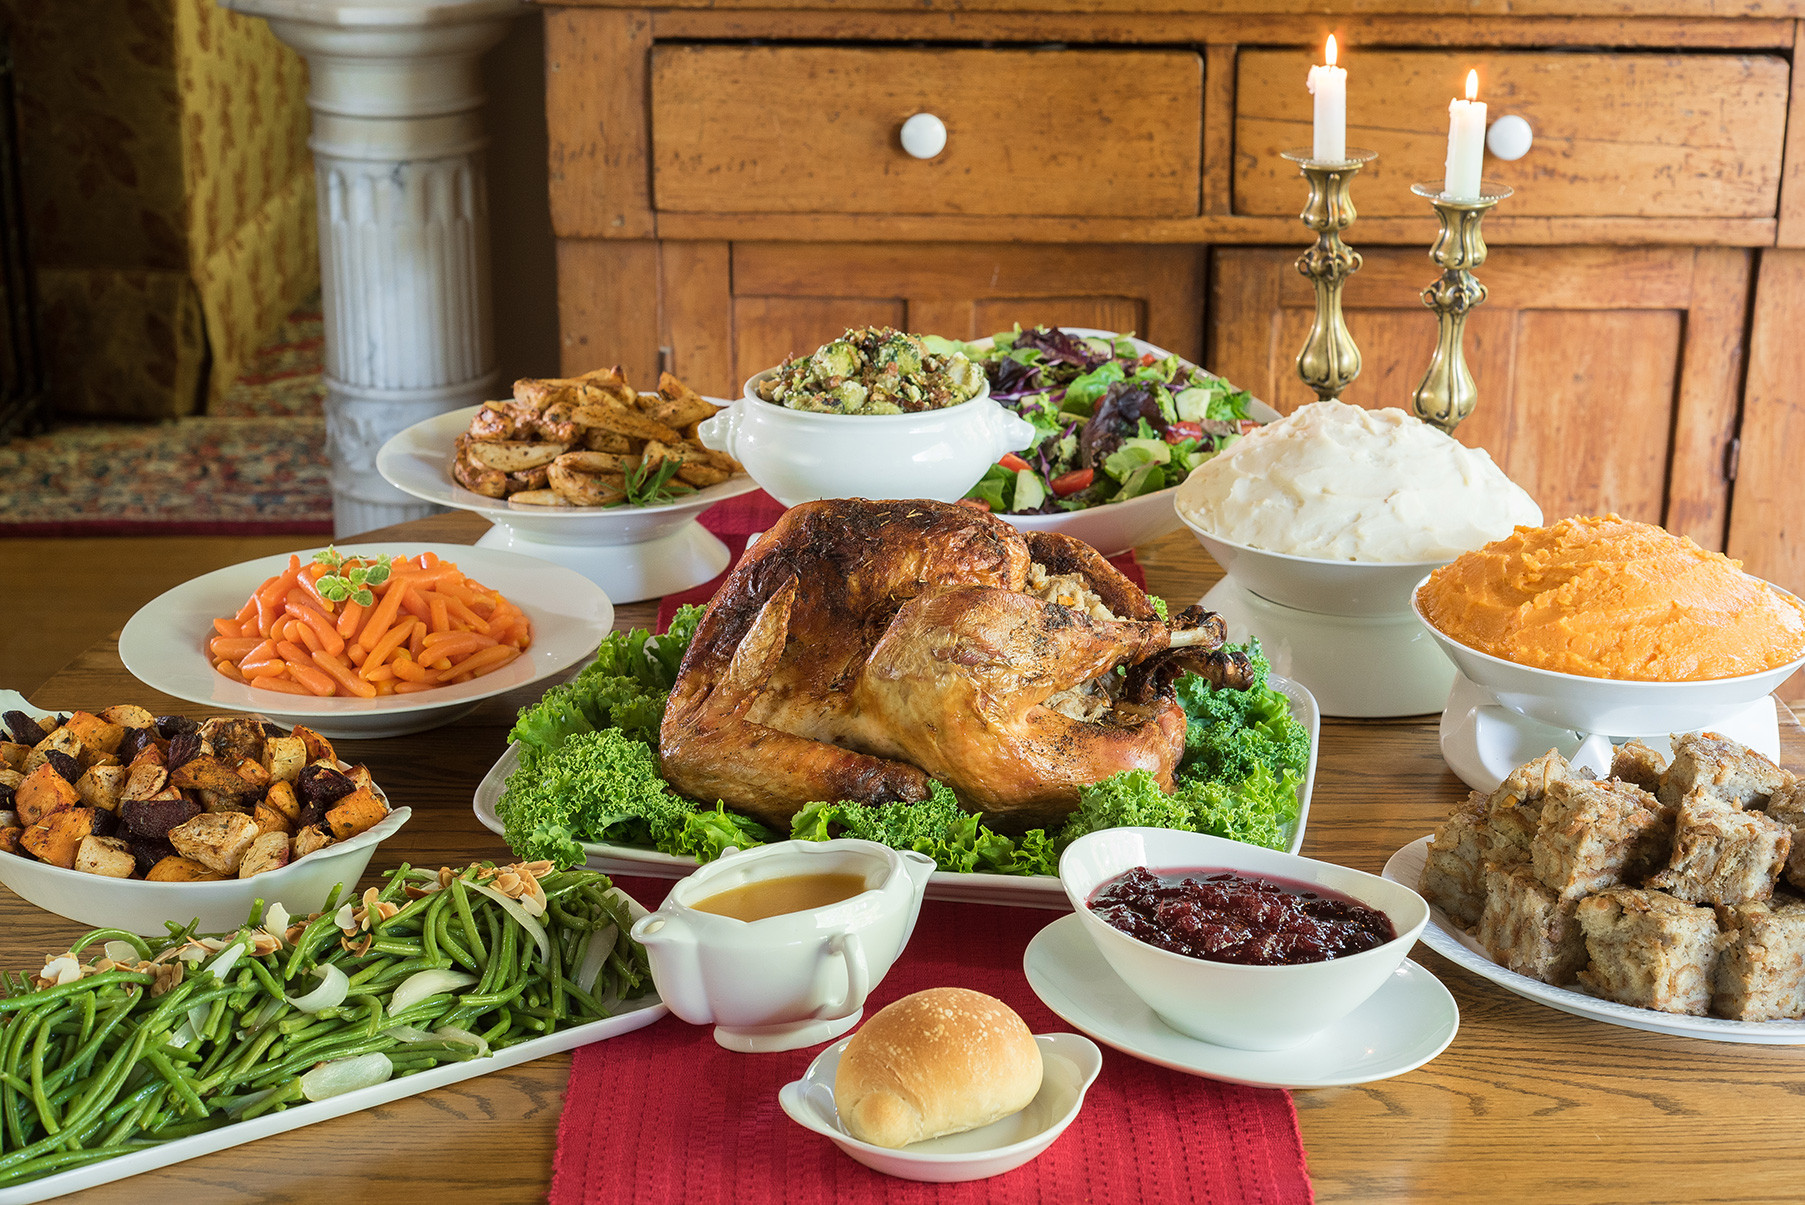 Thanksgiving Dinner Catering  Fall Season Catering Food Specials and Deals at Kiss the Cook